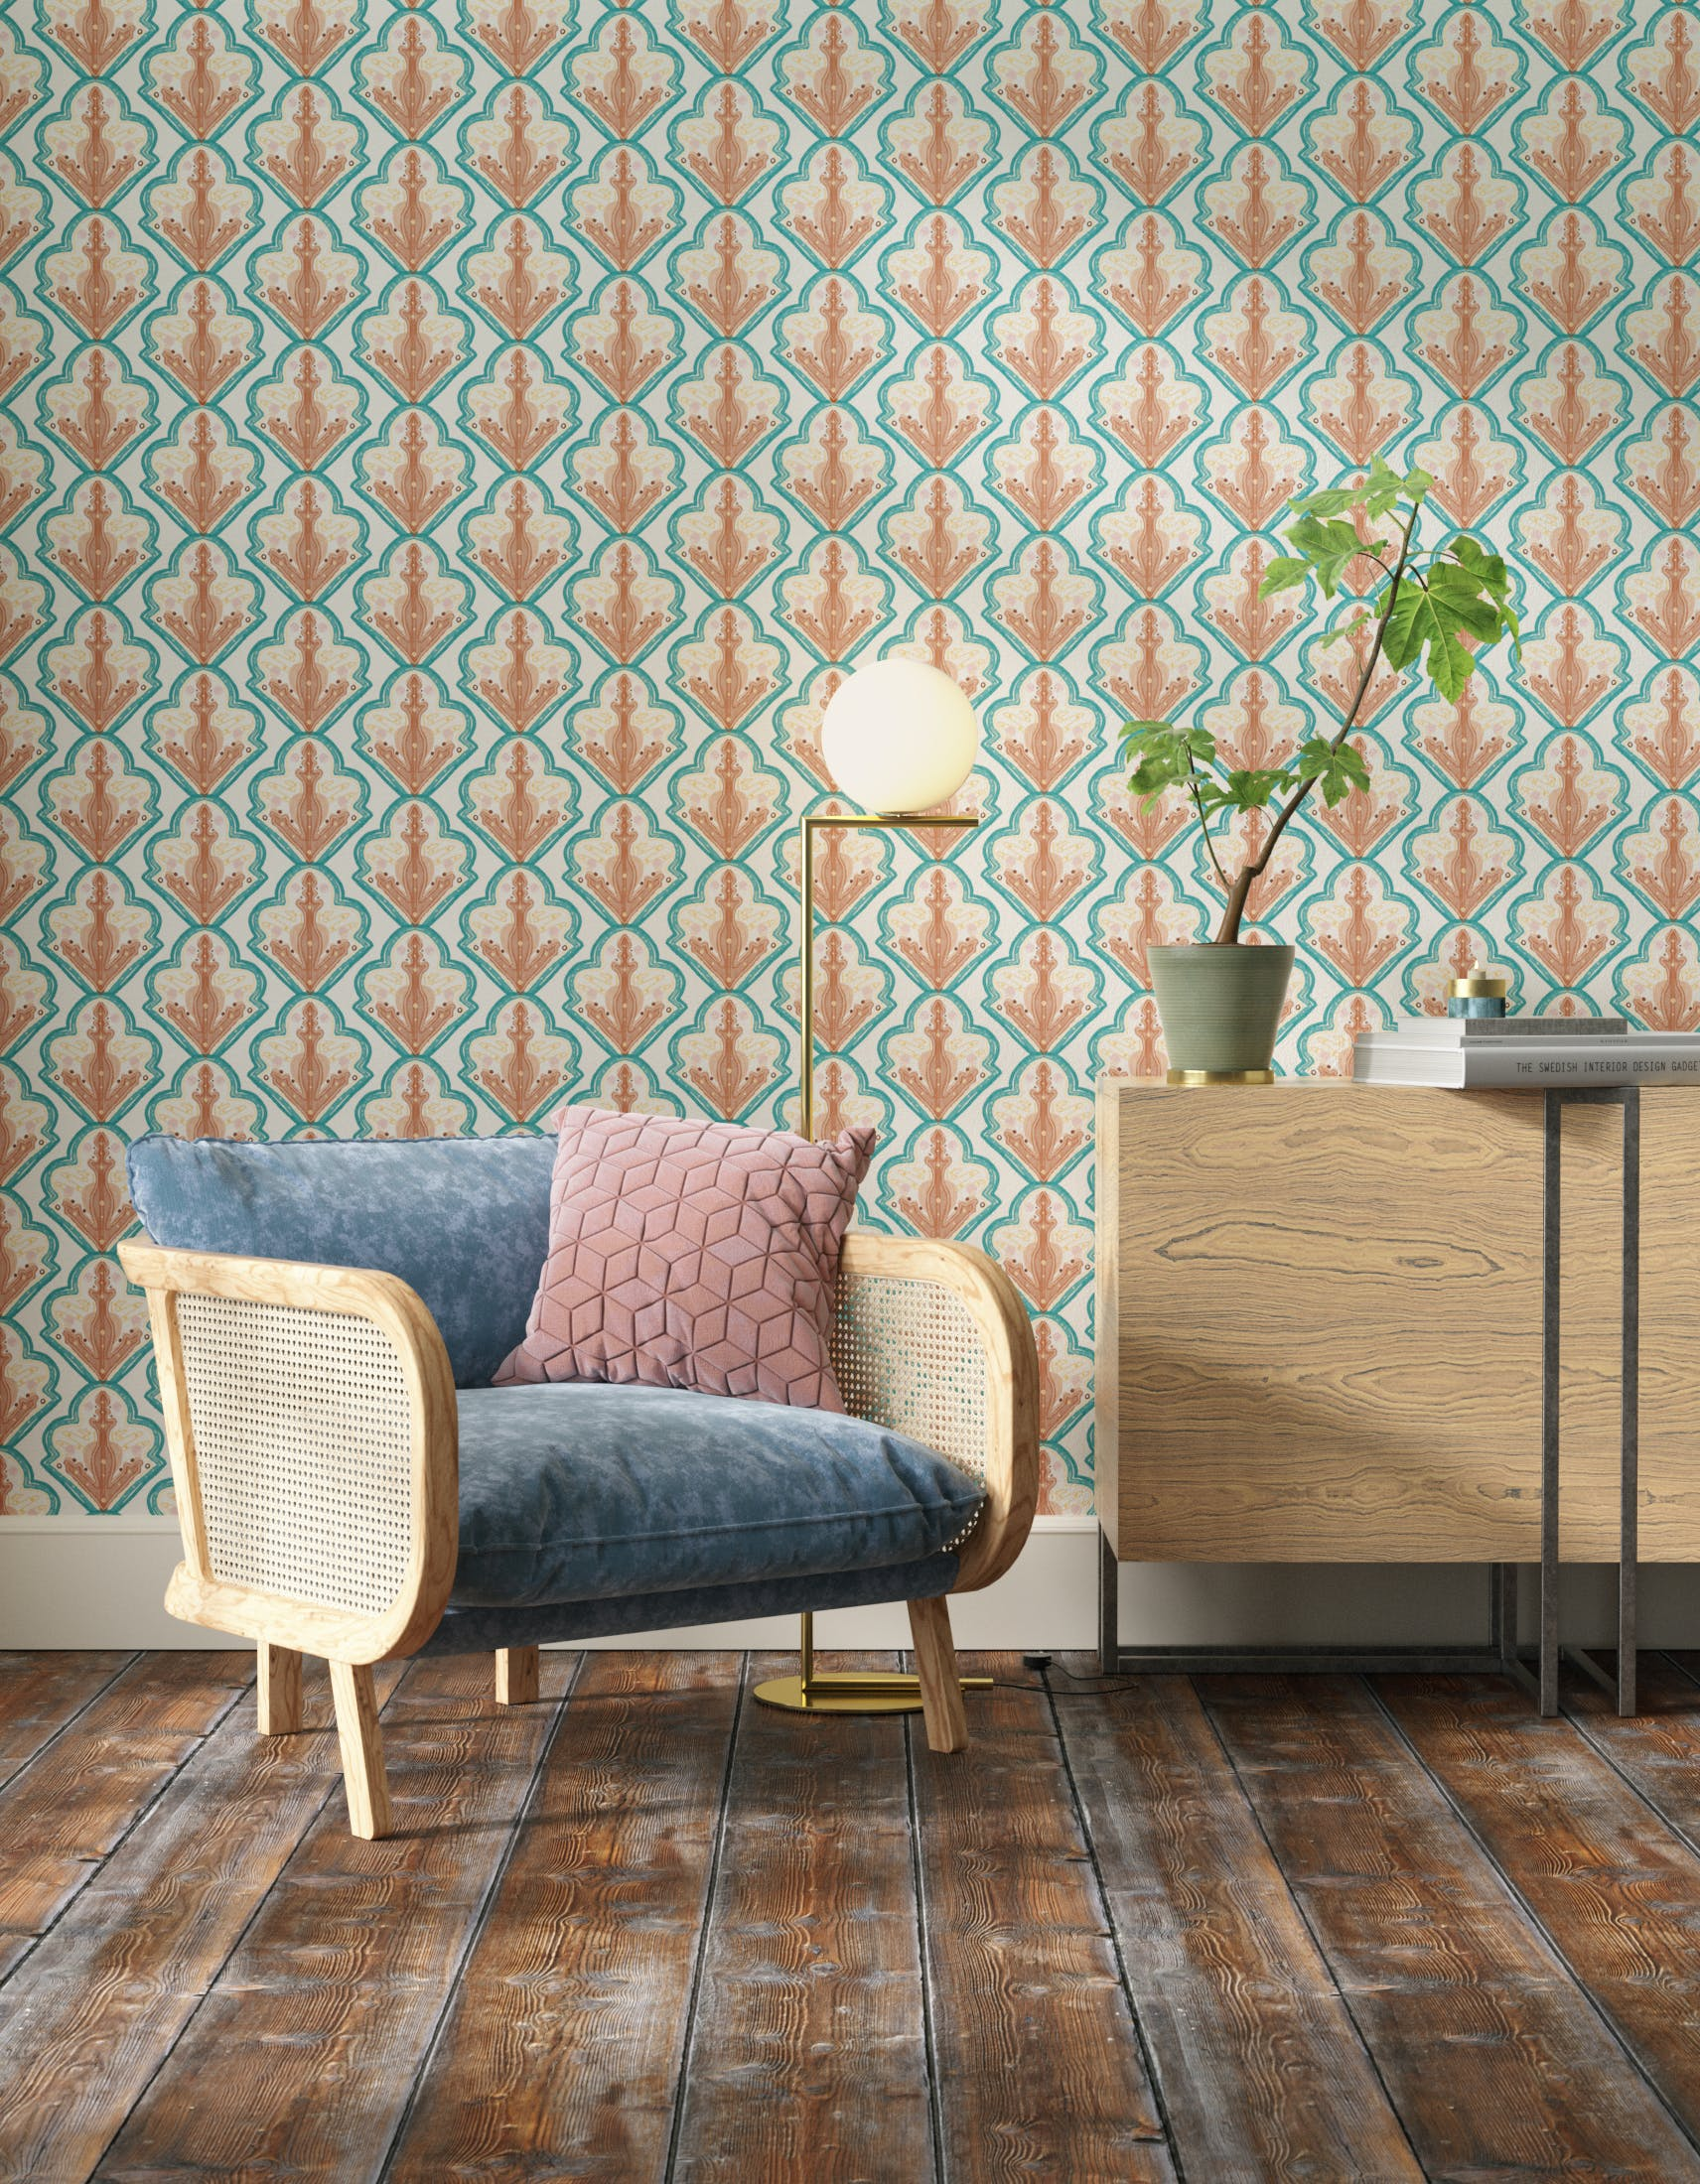 Living room decorated with Lick x Lottie McDowell Travelling Tiles 01 mosaic wallpaper